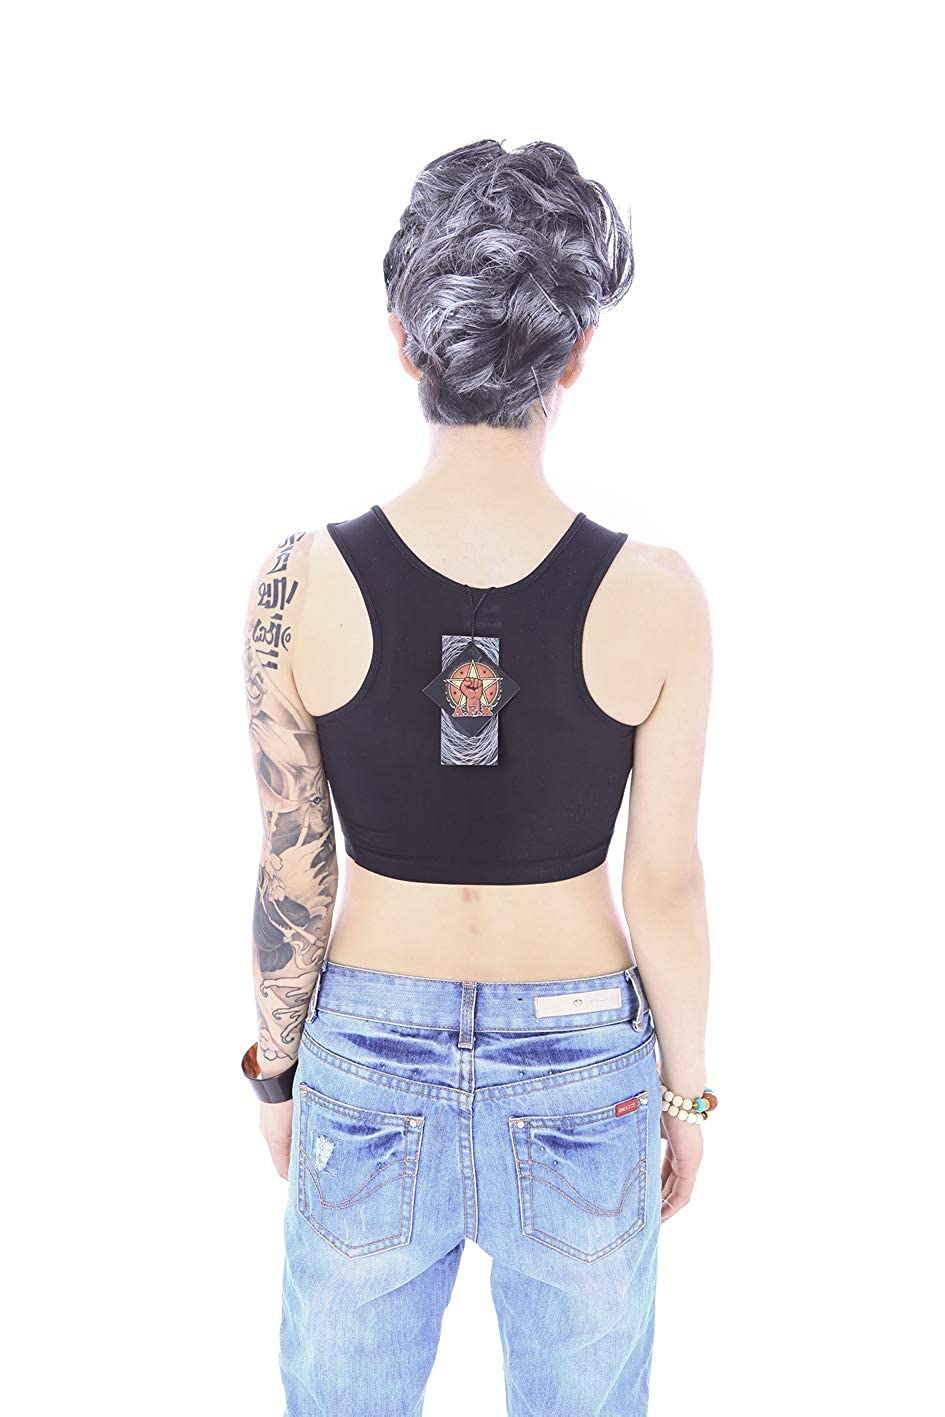 BaronHong Pullover Half Length Chest Binder Without Clips for Tomboy Trans Lesbian